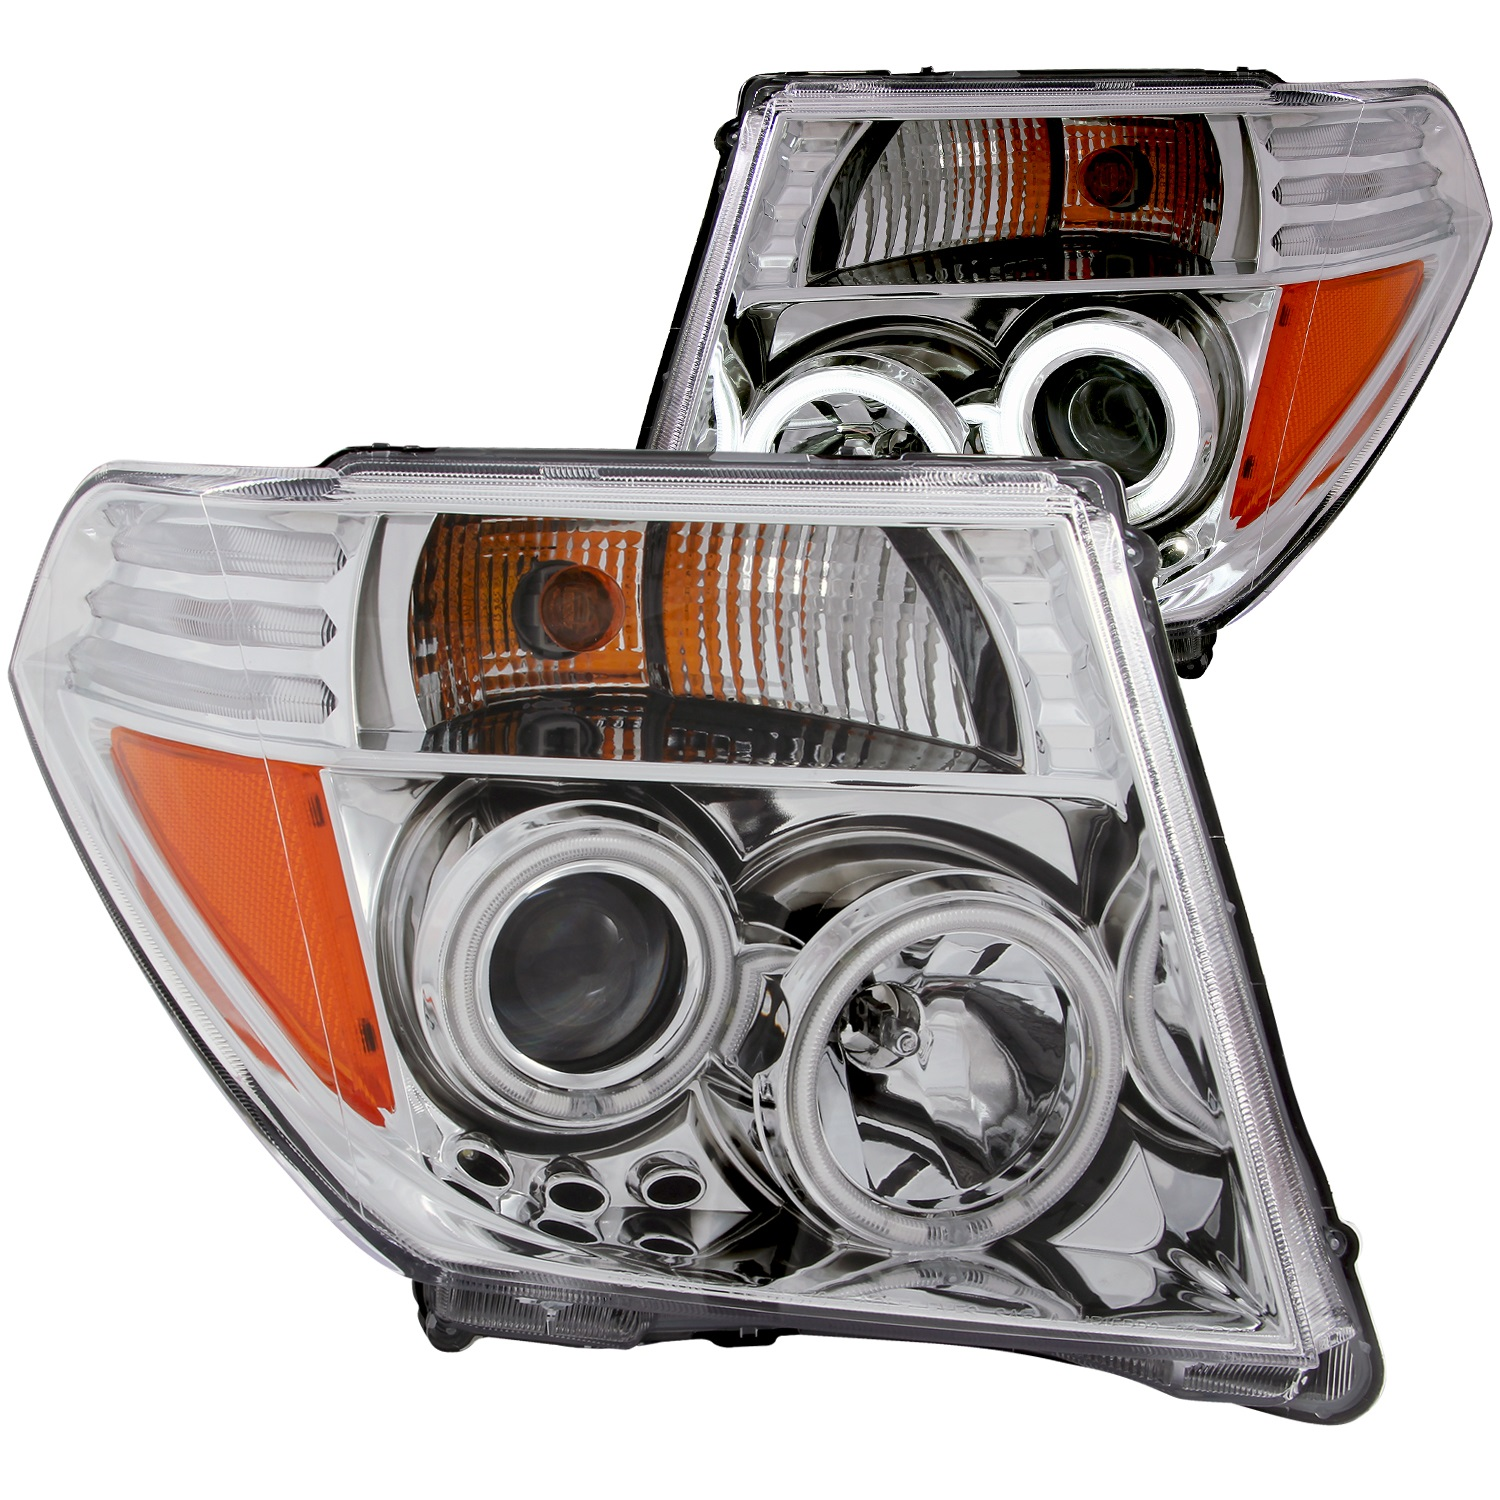 Anzo USA 111112 Projector Headlight Set w/Halo Fits 05-08 Frontier Pathfinder